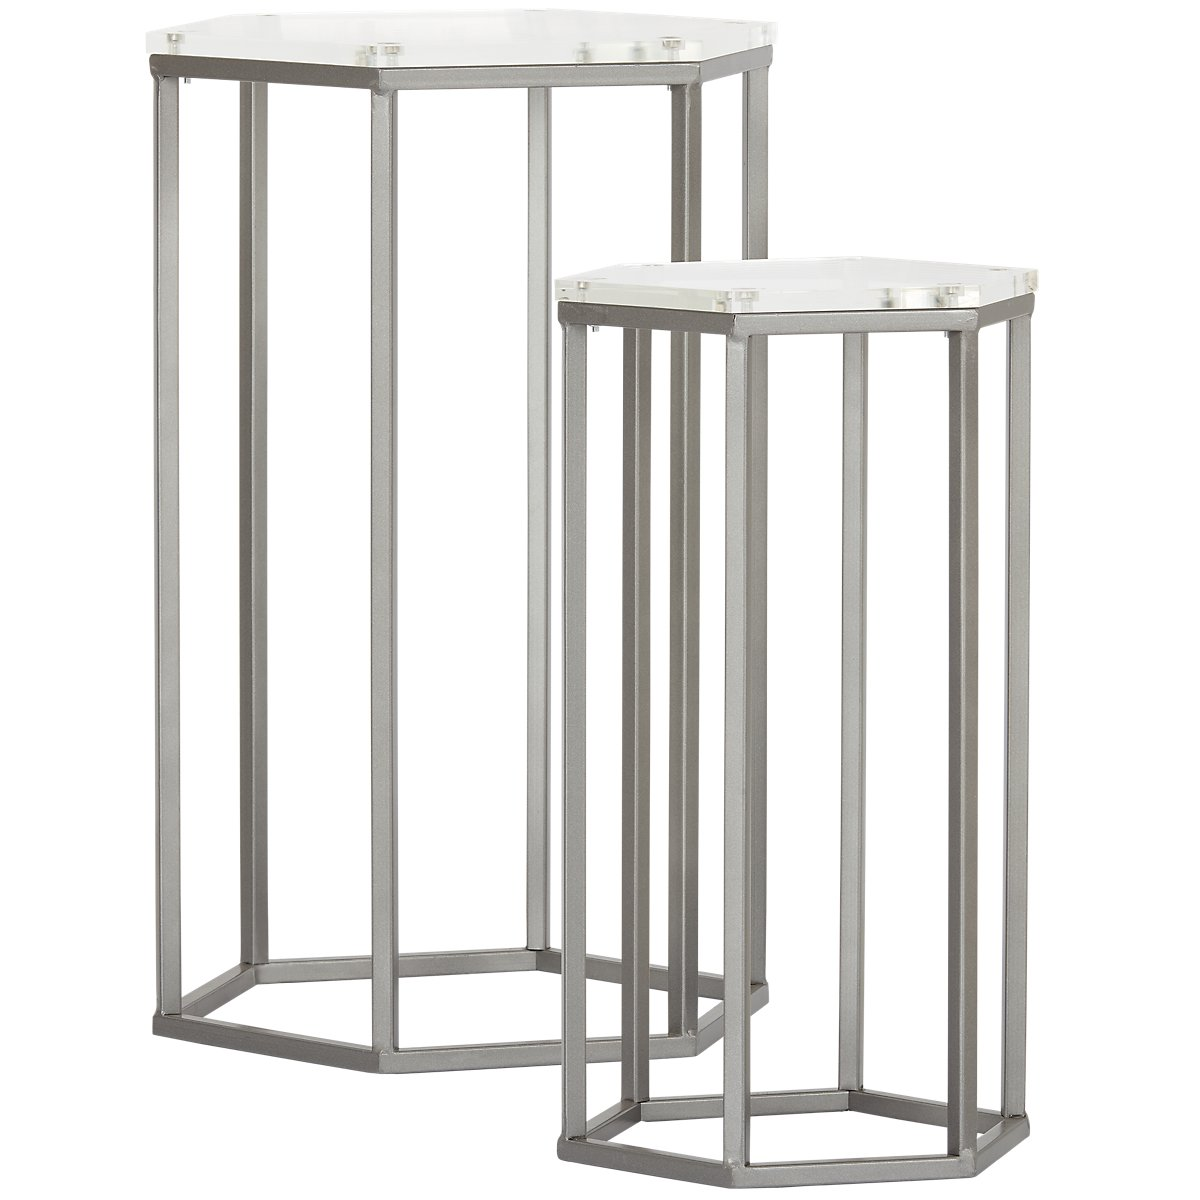 City furniture kati glass nesting tables kati glass nesting tables watchthetrailerfo